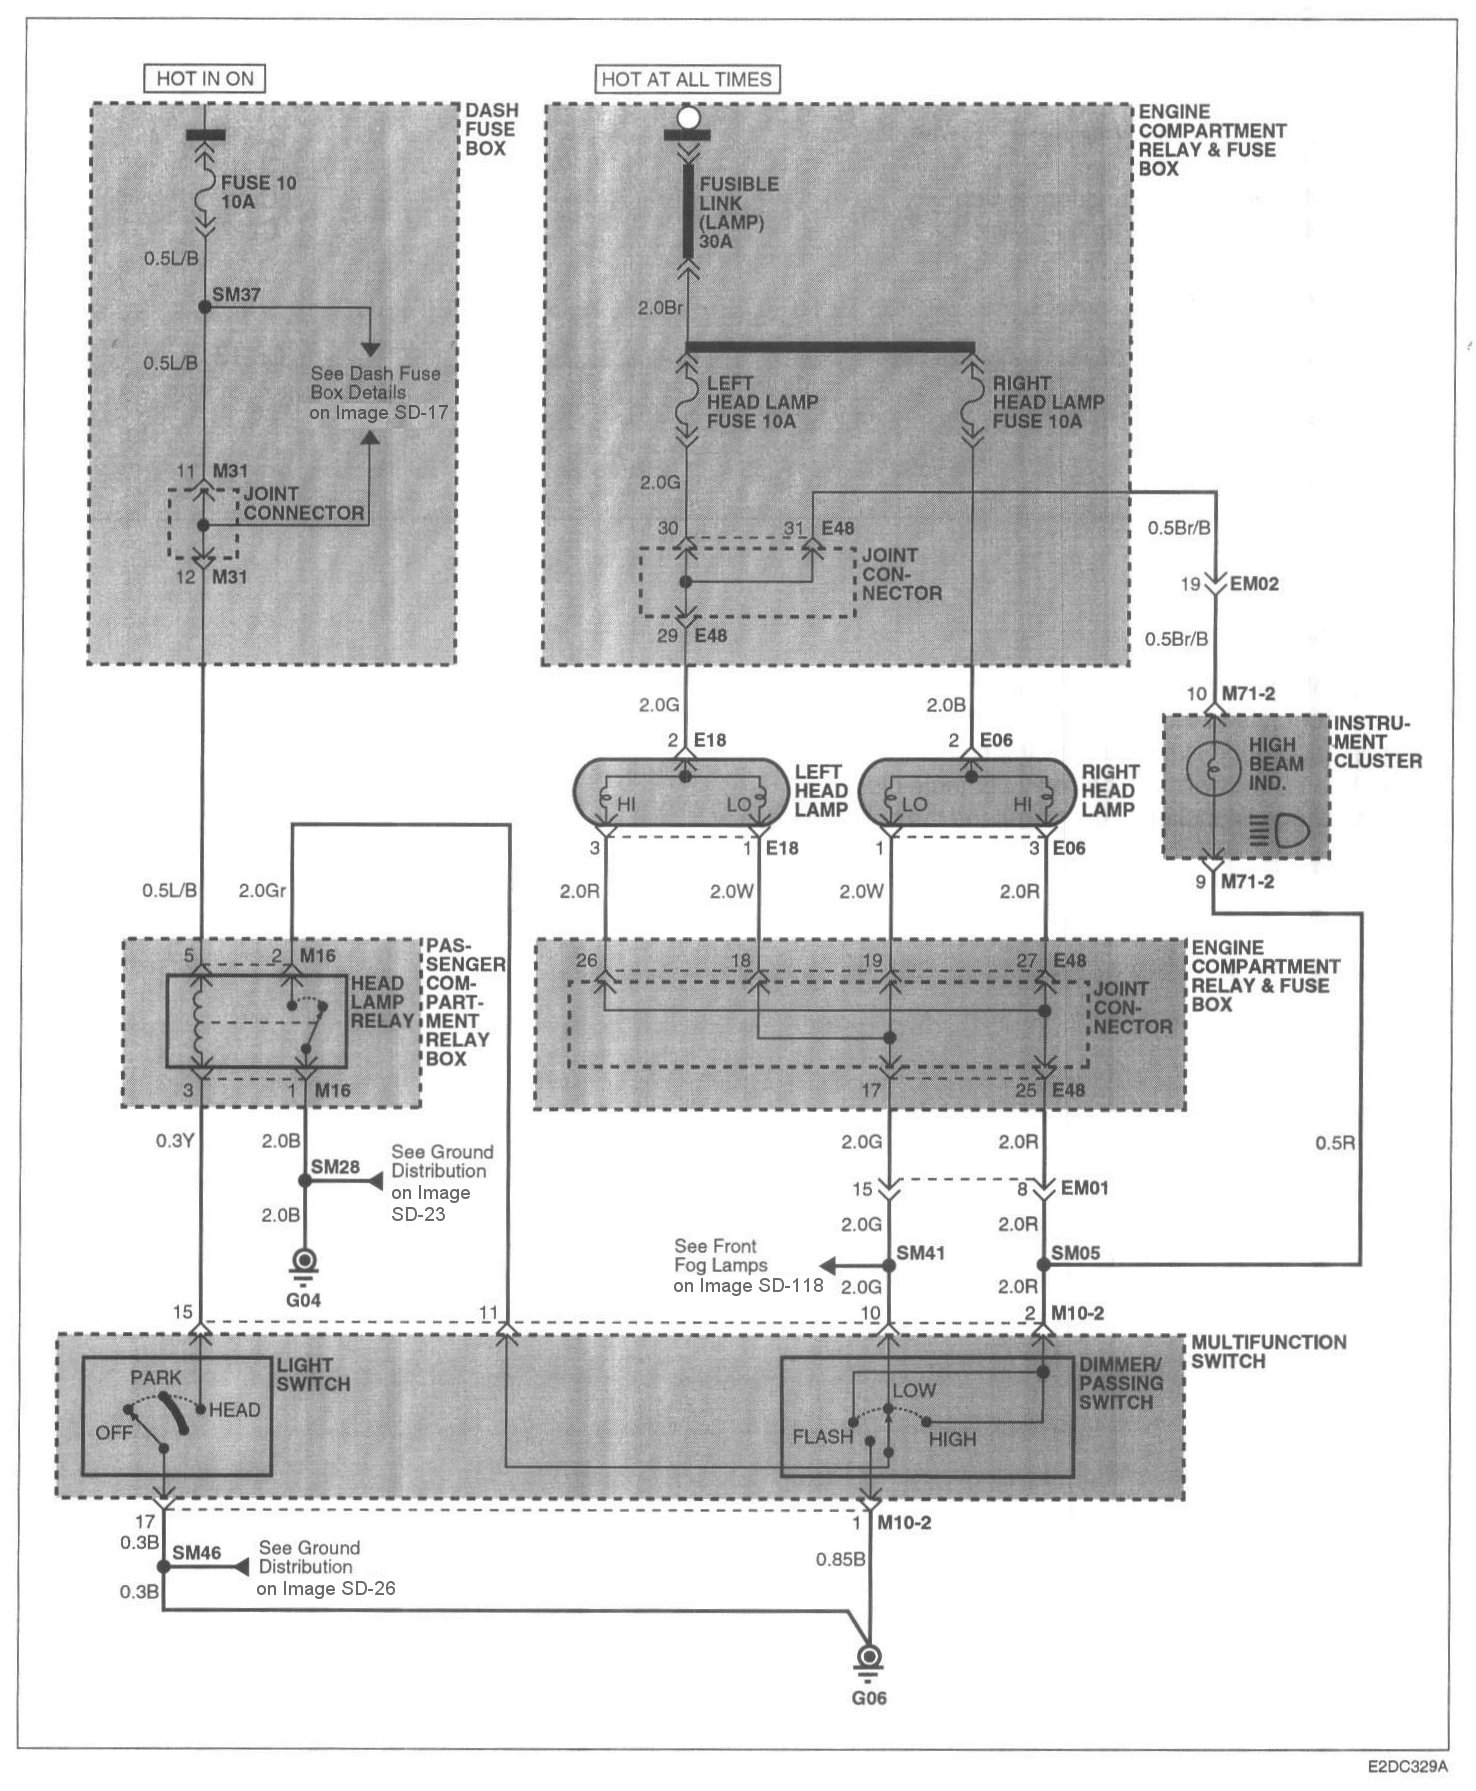 2002 Hyundai Sonata Wiring Diagram Reveolution Of For 89 St 91 Car Get Free Starter